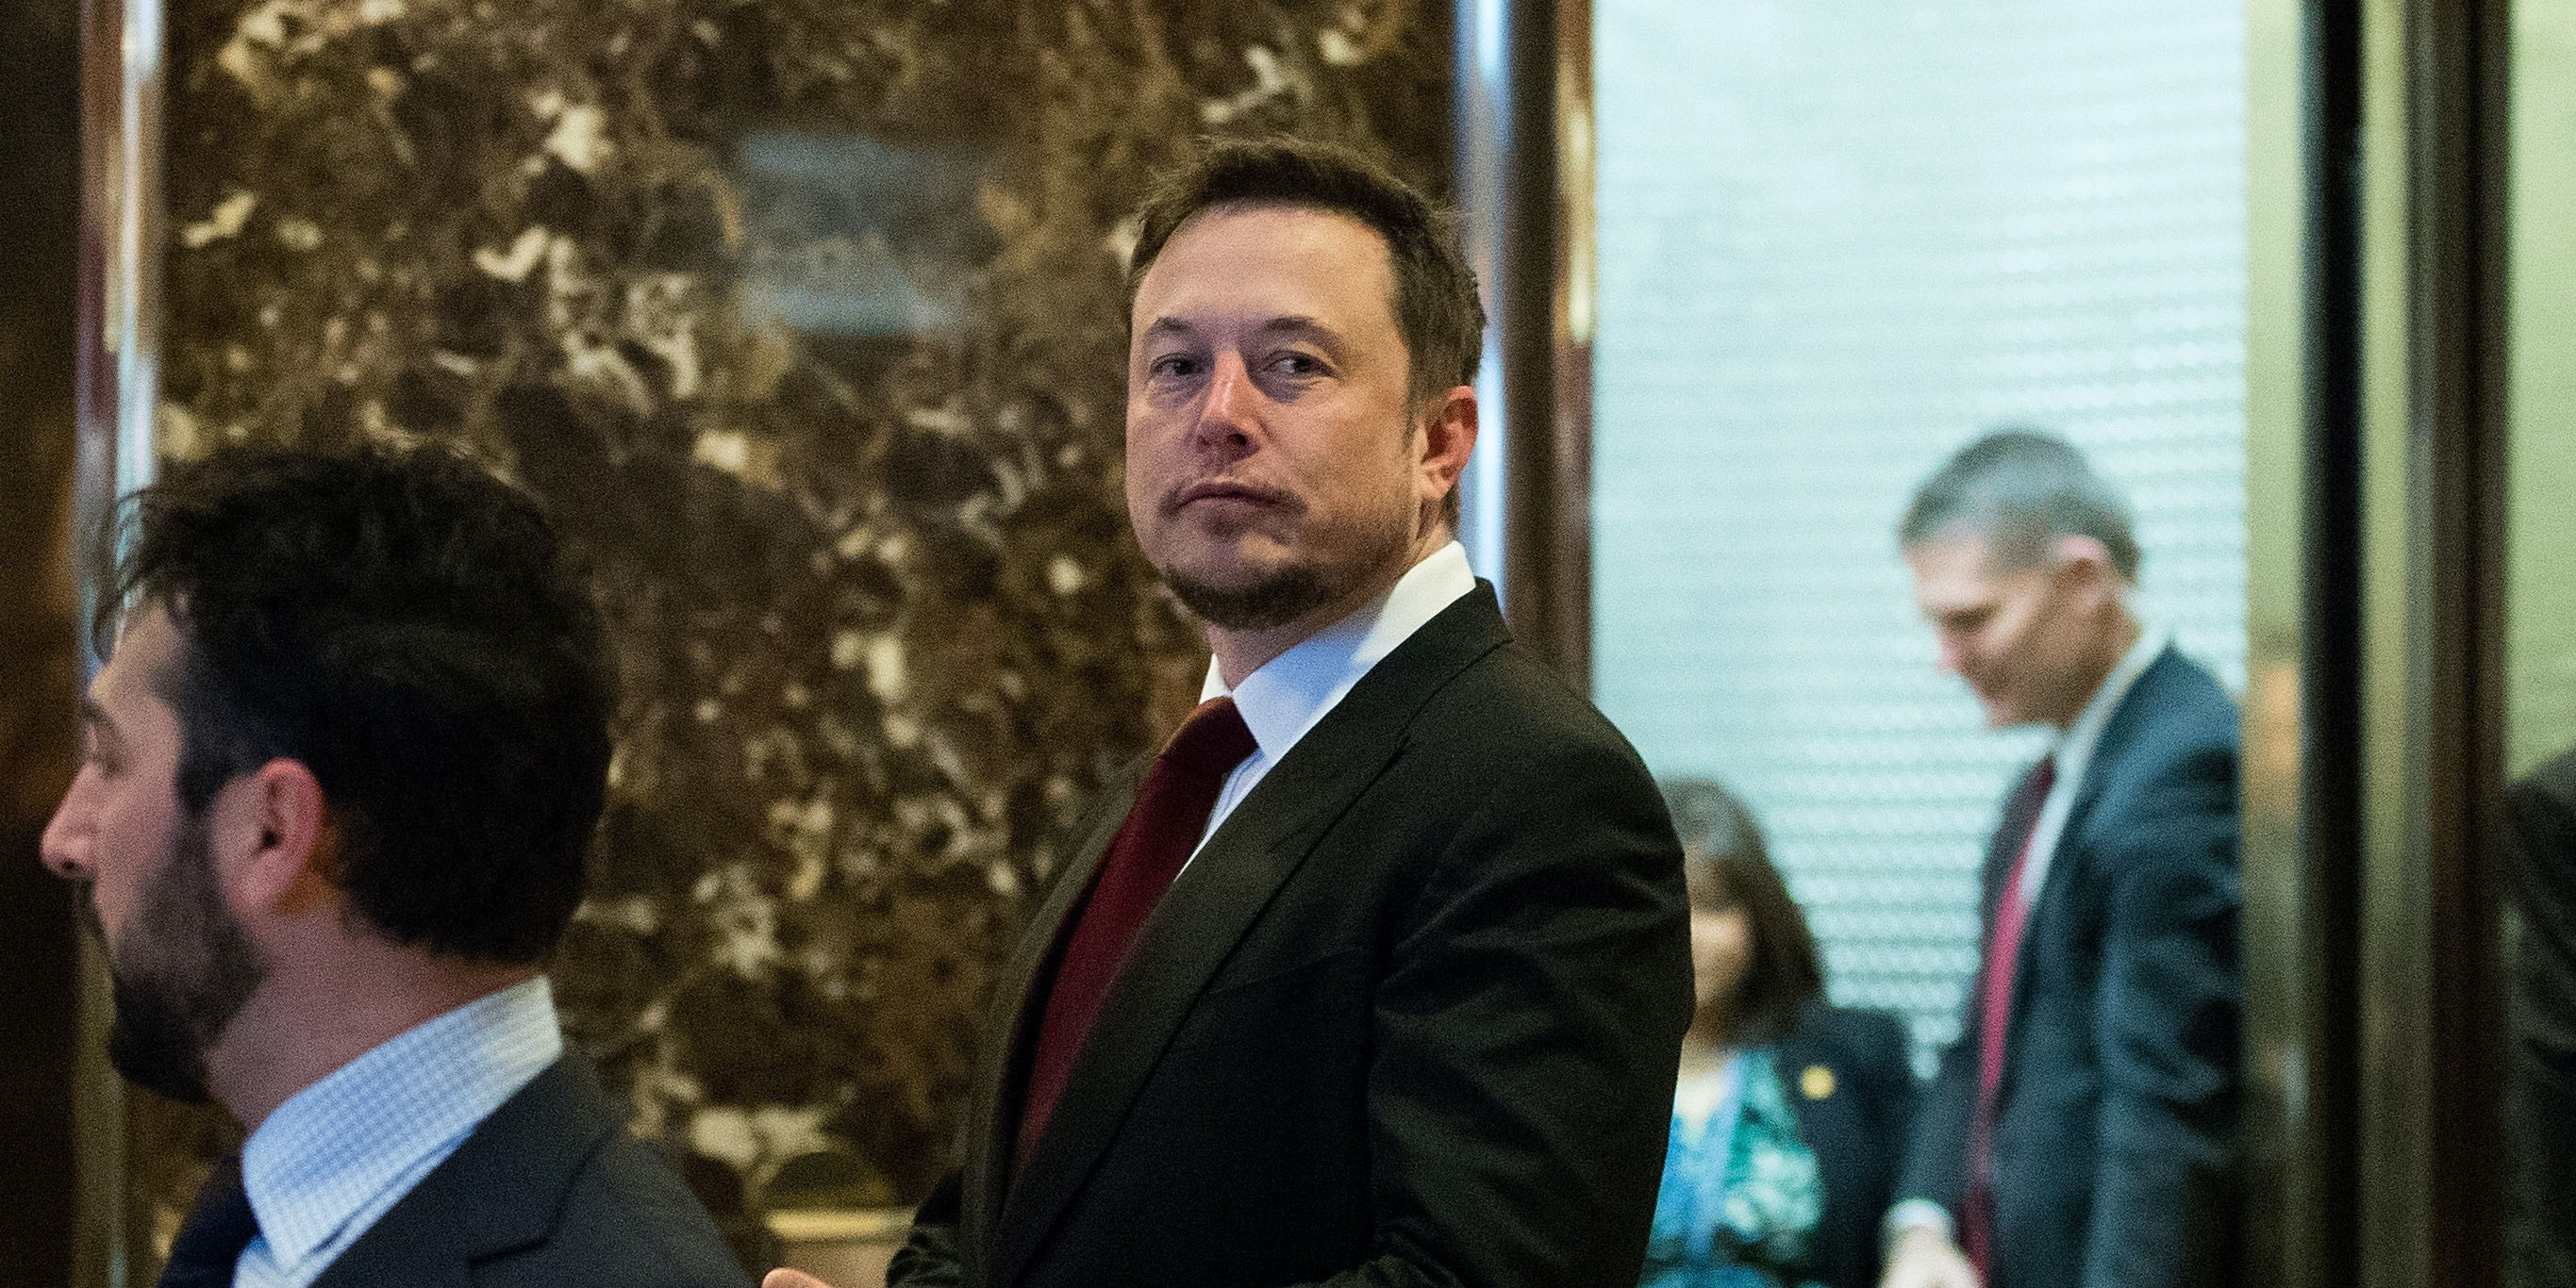 Entrepreneur Elon Musk arrives at Trump Tower, January 6, 2017 in New York City. President-elect Donald Trump and his transition team are in the process of filling cabinet and other high level positions for the new administration.